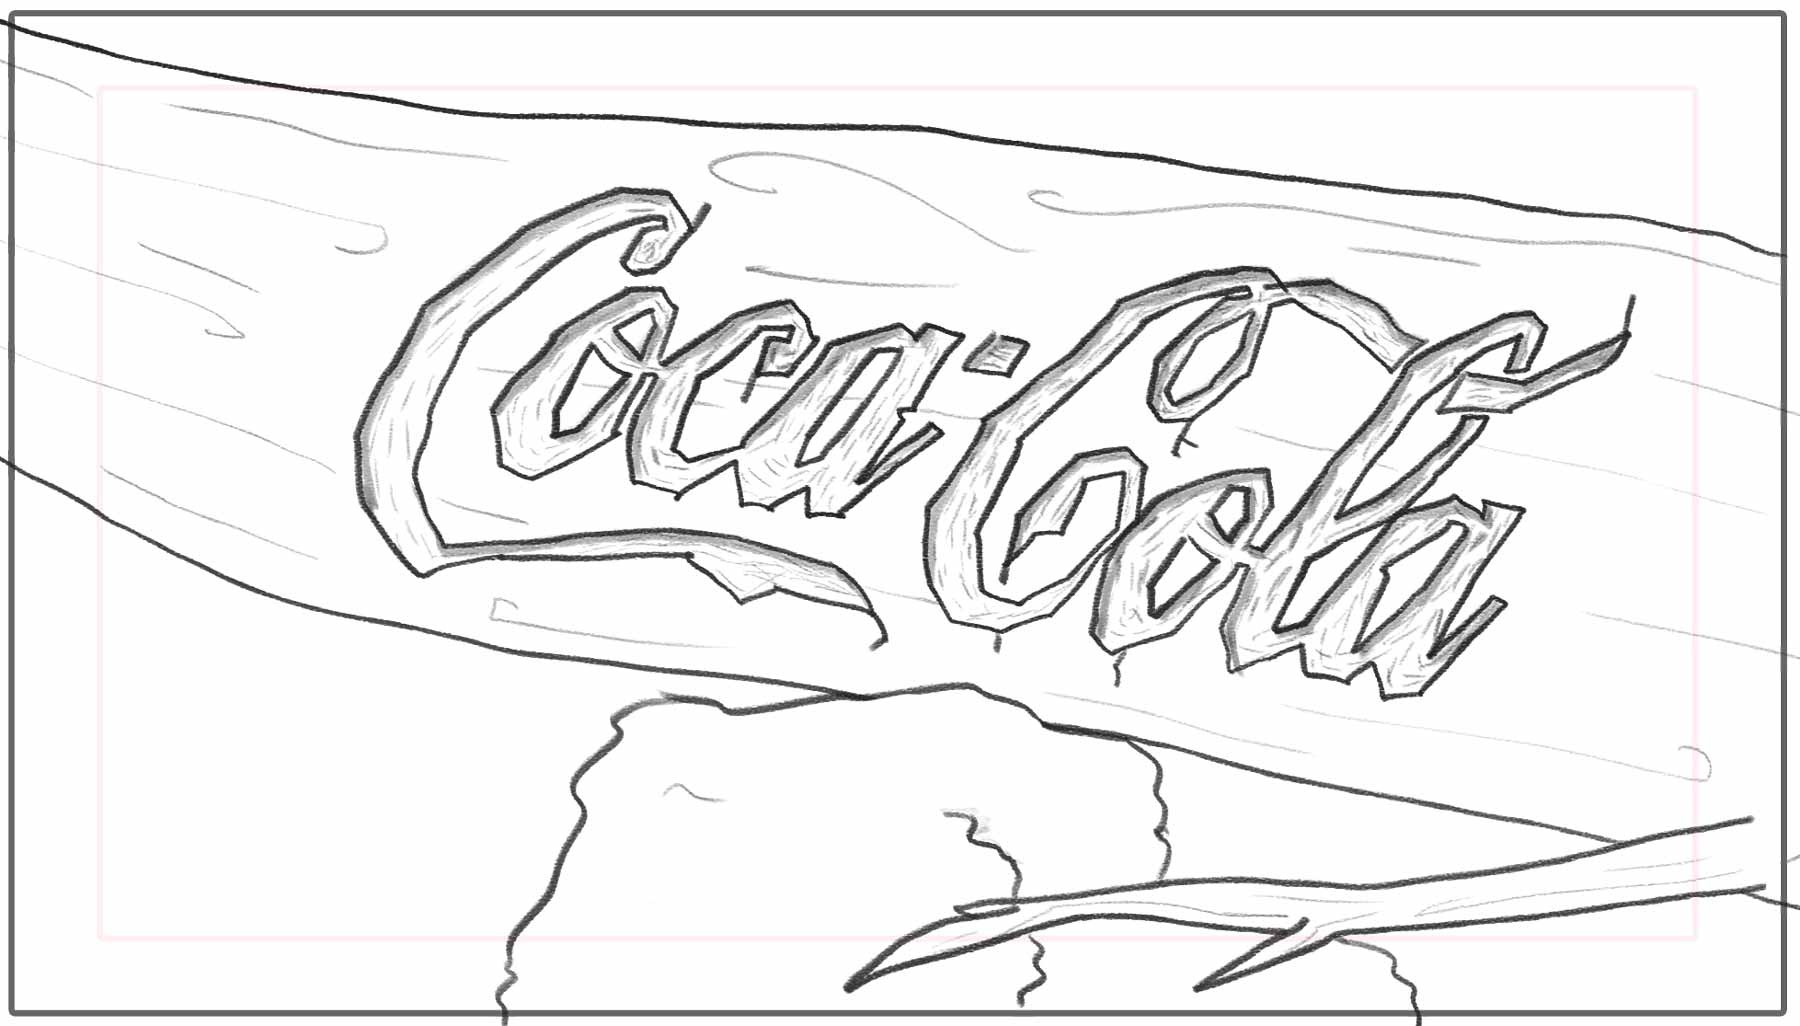 Make Believe — Storyboard frame — Coca Cola test type